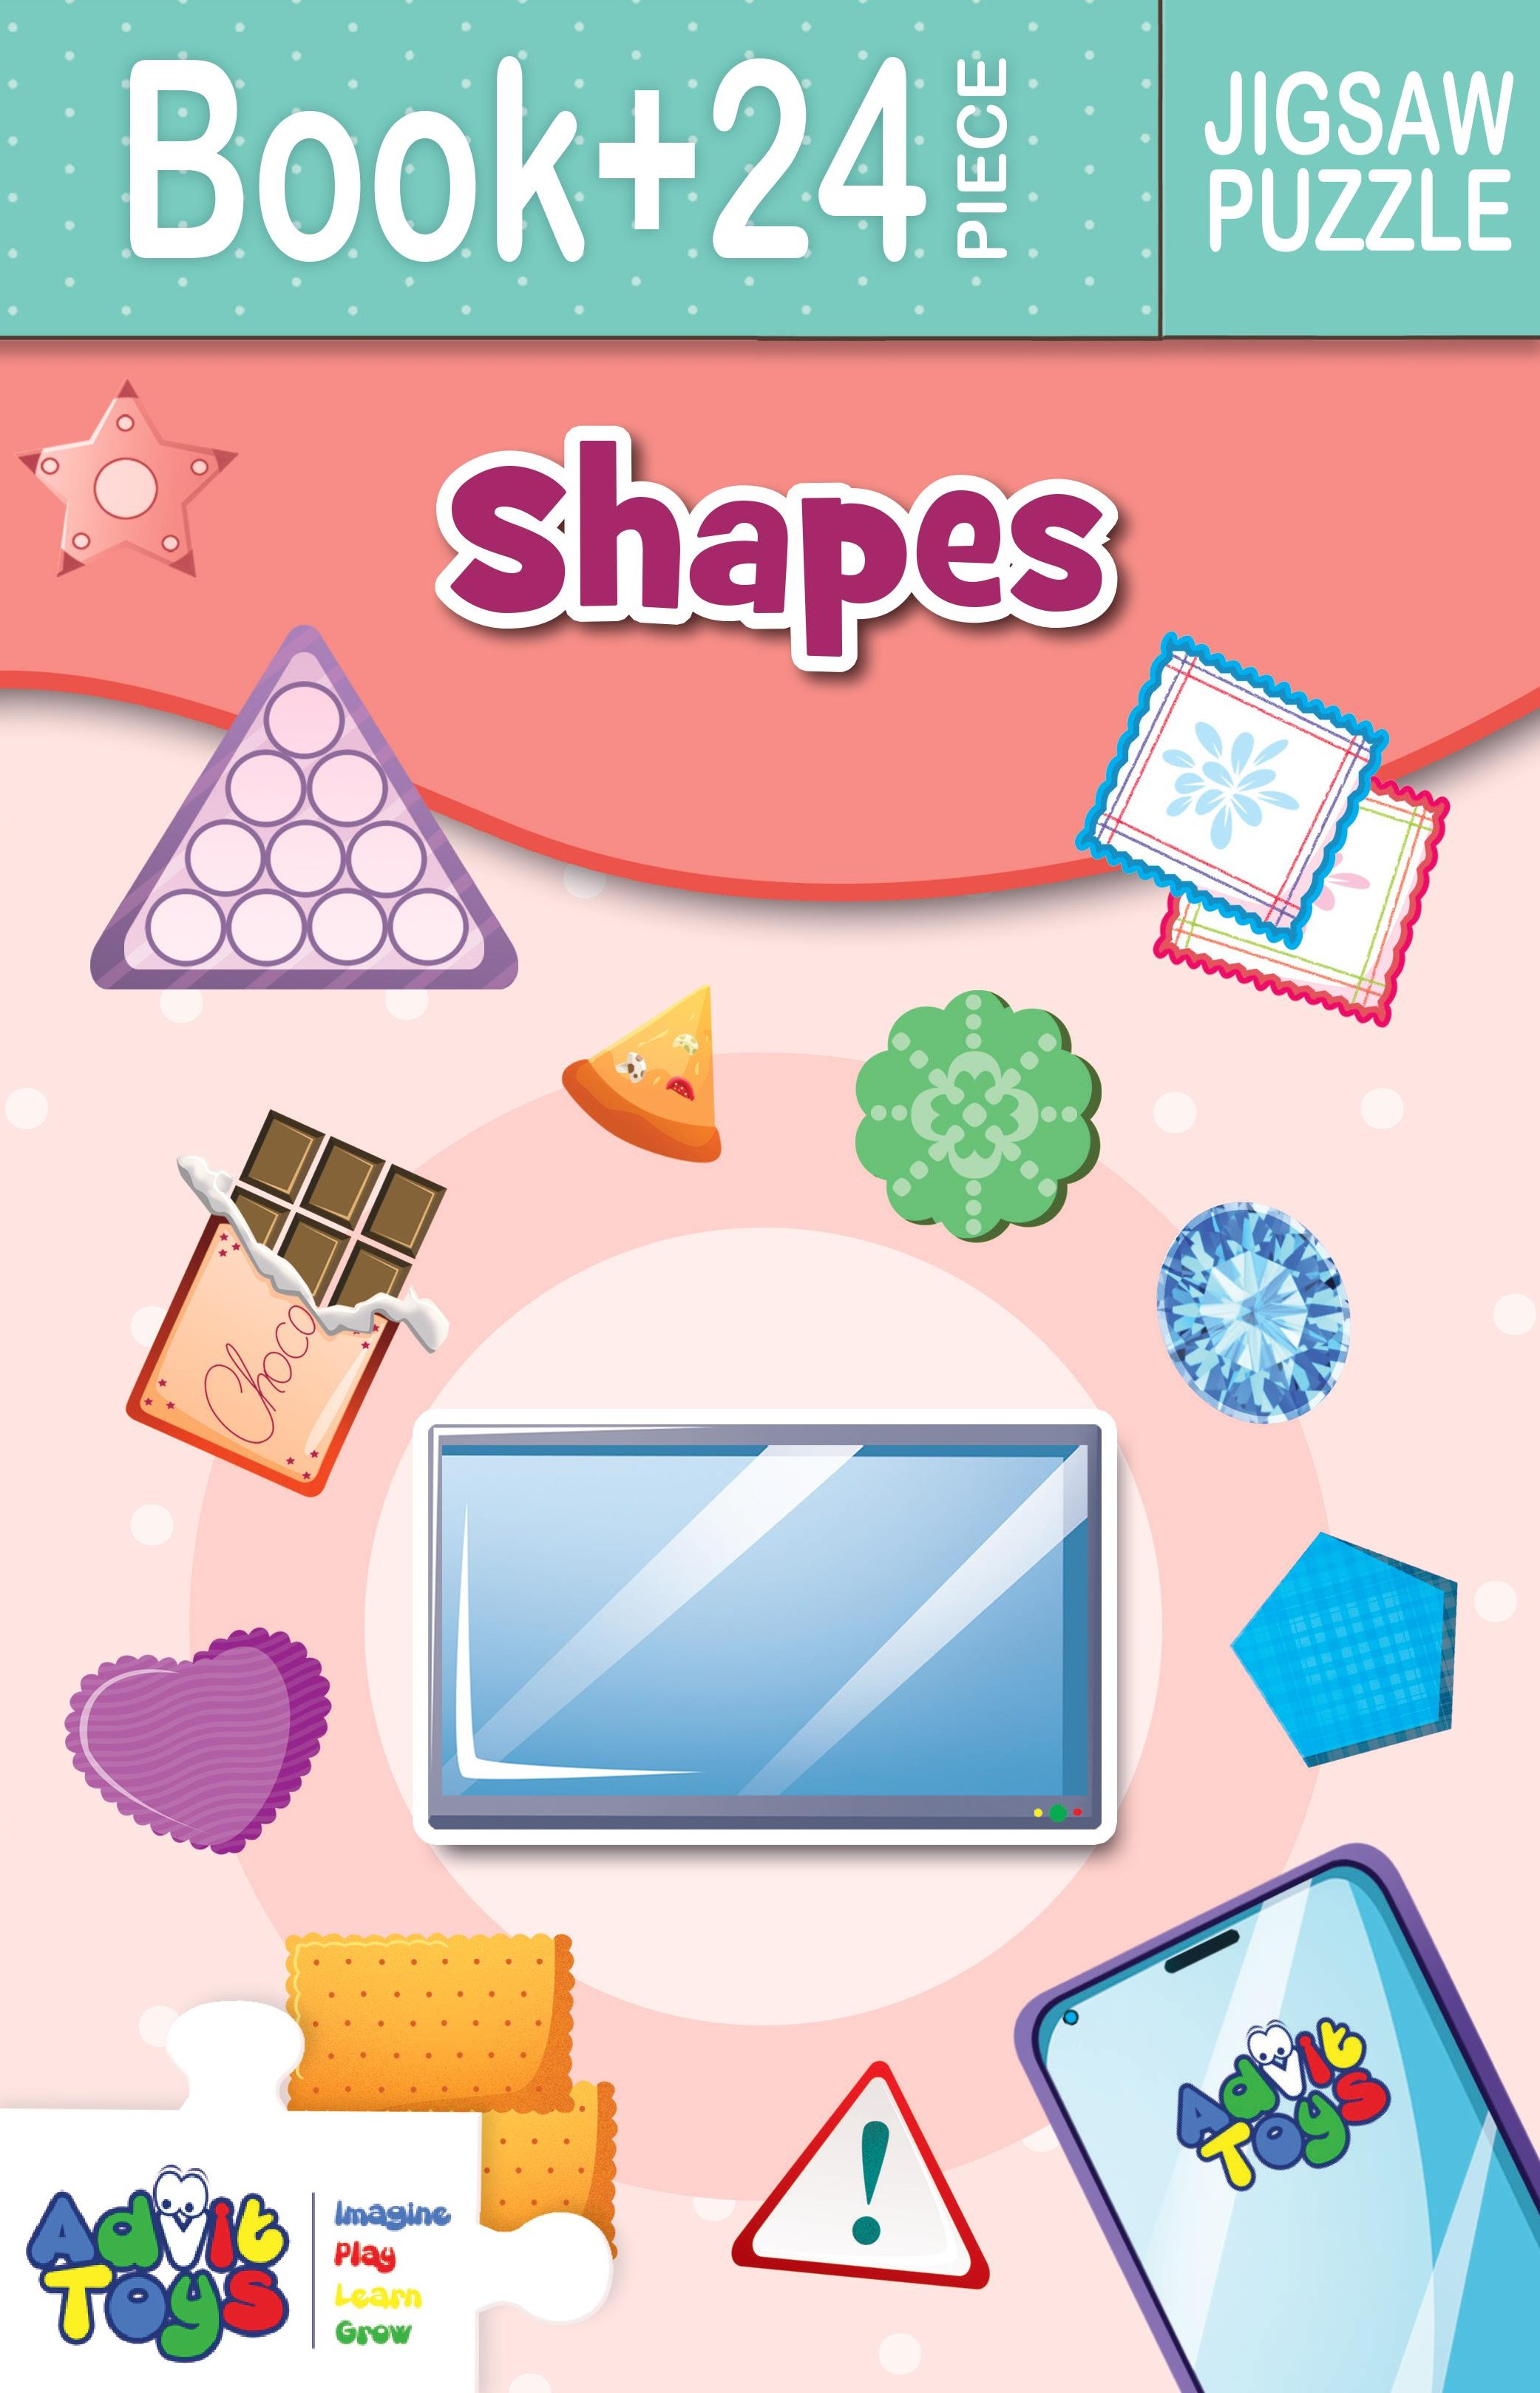 SHAPES JIGSAW PUZZLE ( BOOK + 24 PIECE )